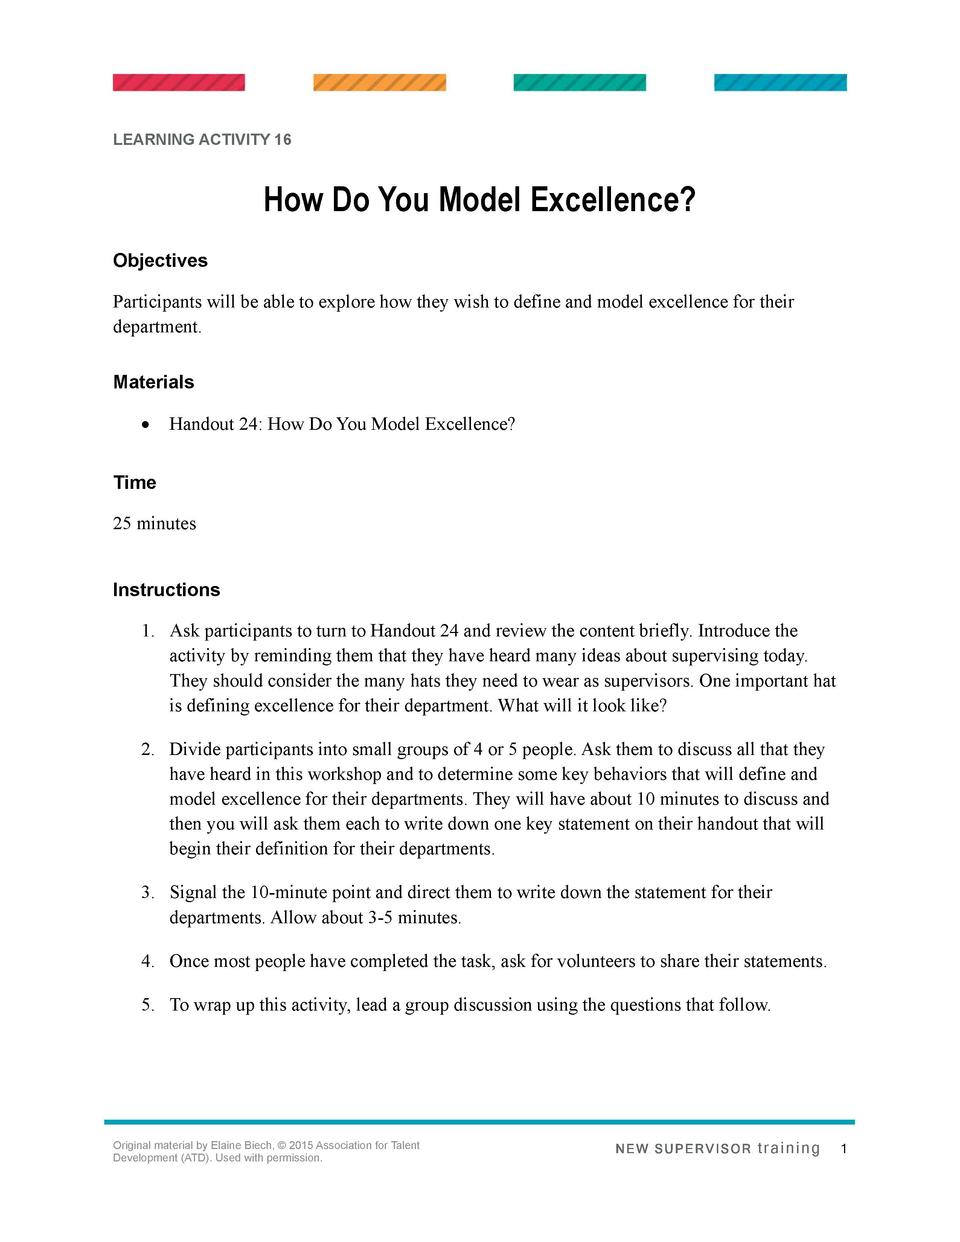 LEARNING ACTIVITY 16  How Do You Model Excellence  Objectives Participants will be able to explore how they wish to define...